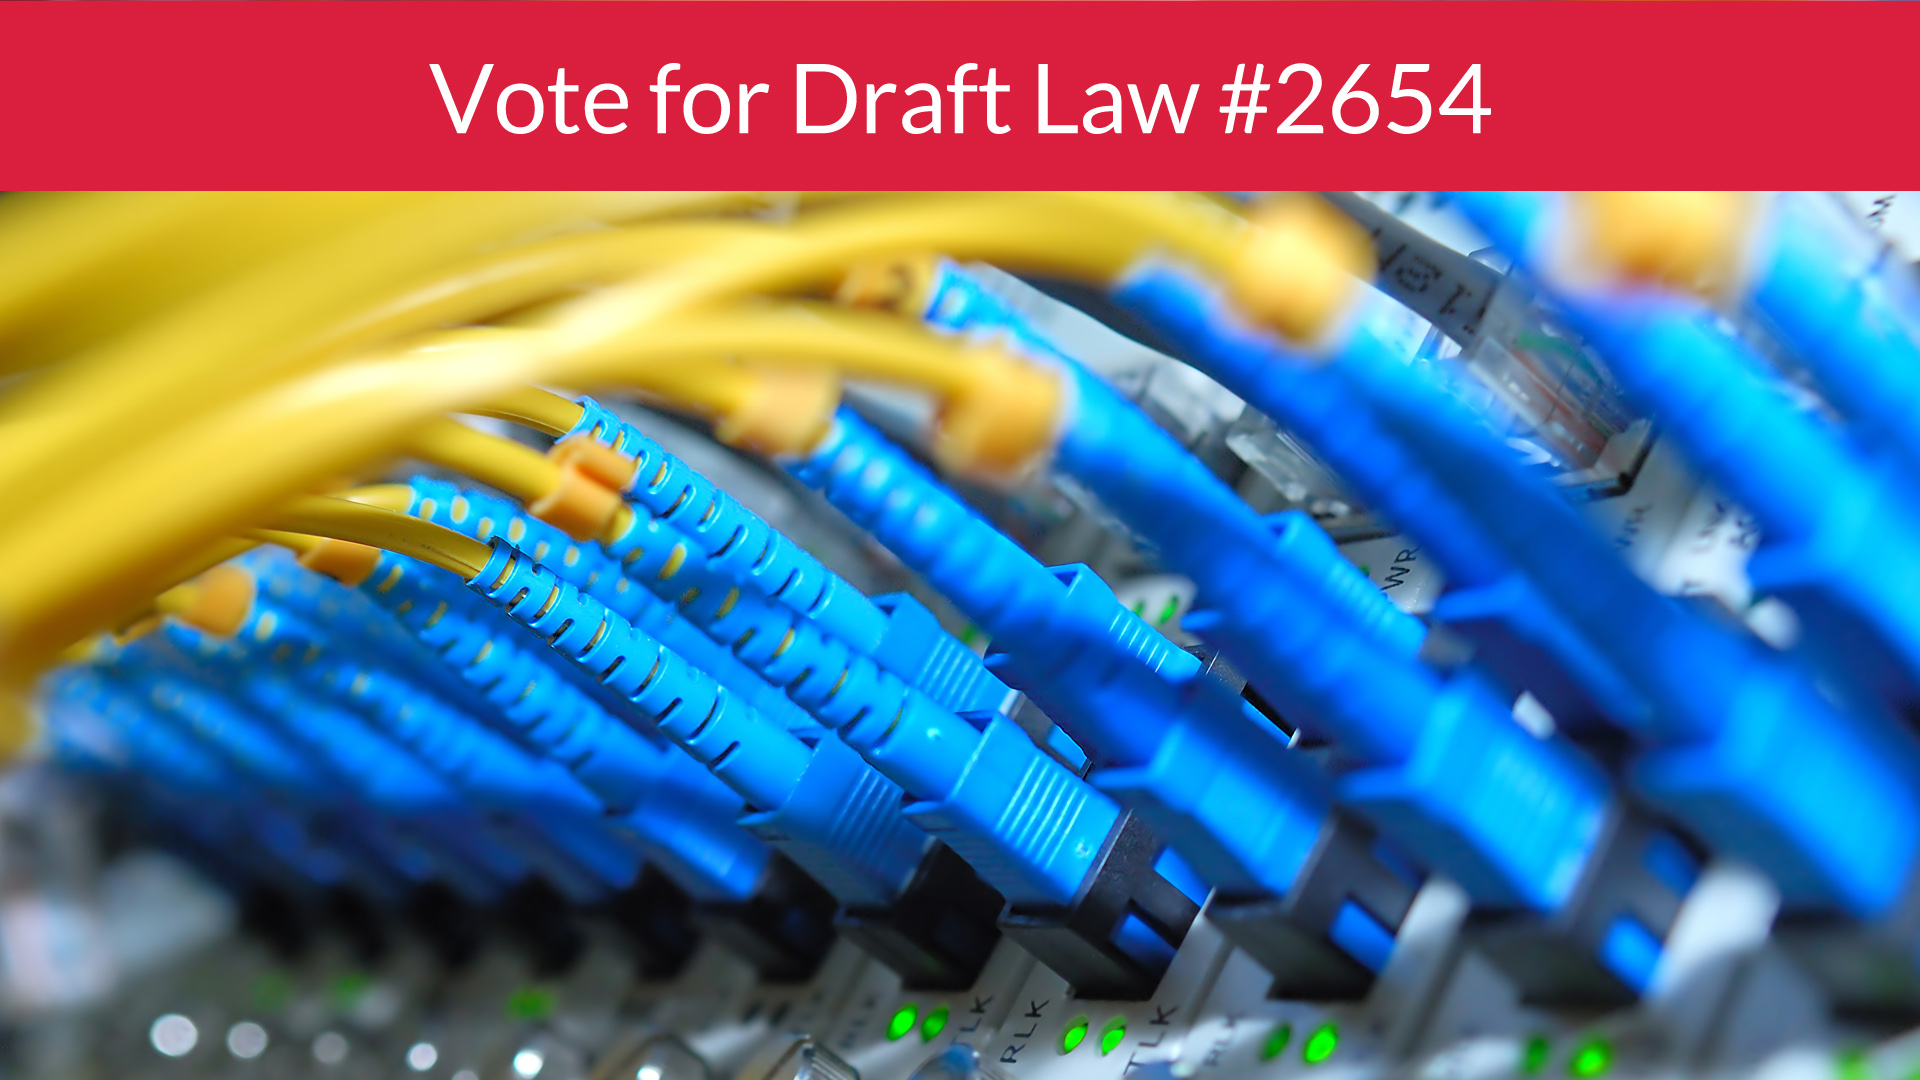 The American Chamber of Commerce in Ukraine calls on MPs to support the Draft Law #2654 on strengthening telecommunications network security.The American Chamber of Commerce in Ukraine calls on MPs to support the Draft Law #2654 on strengthening telecommunications network security